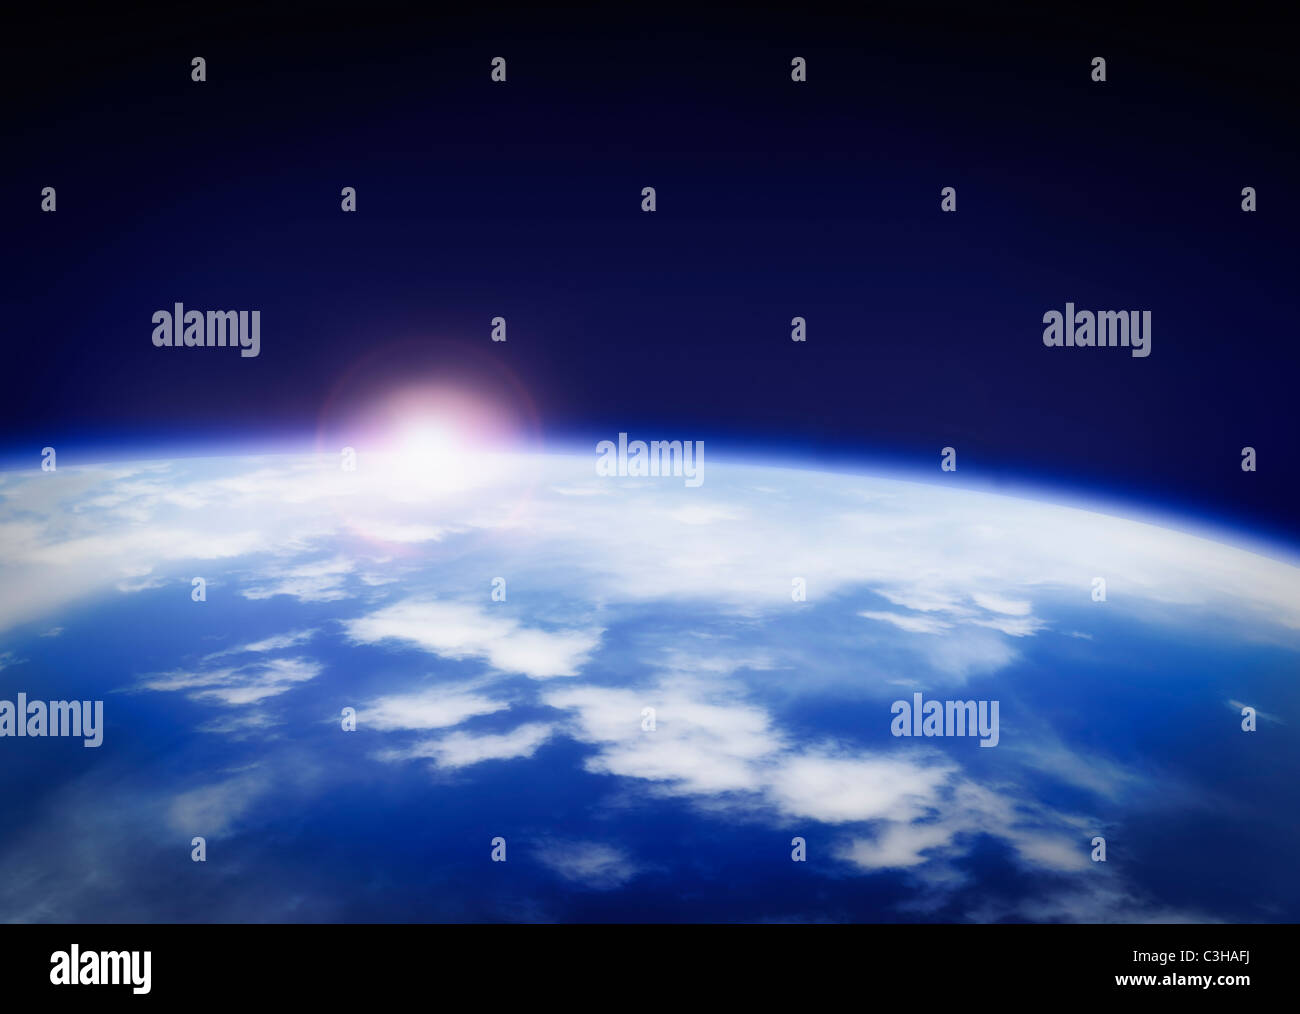 Space with rising sun above planet earth - Stock Image